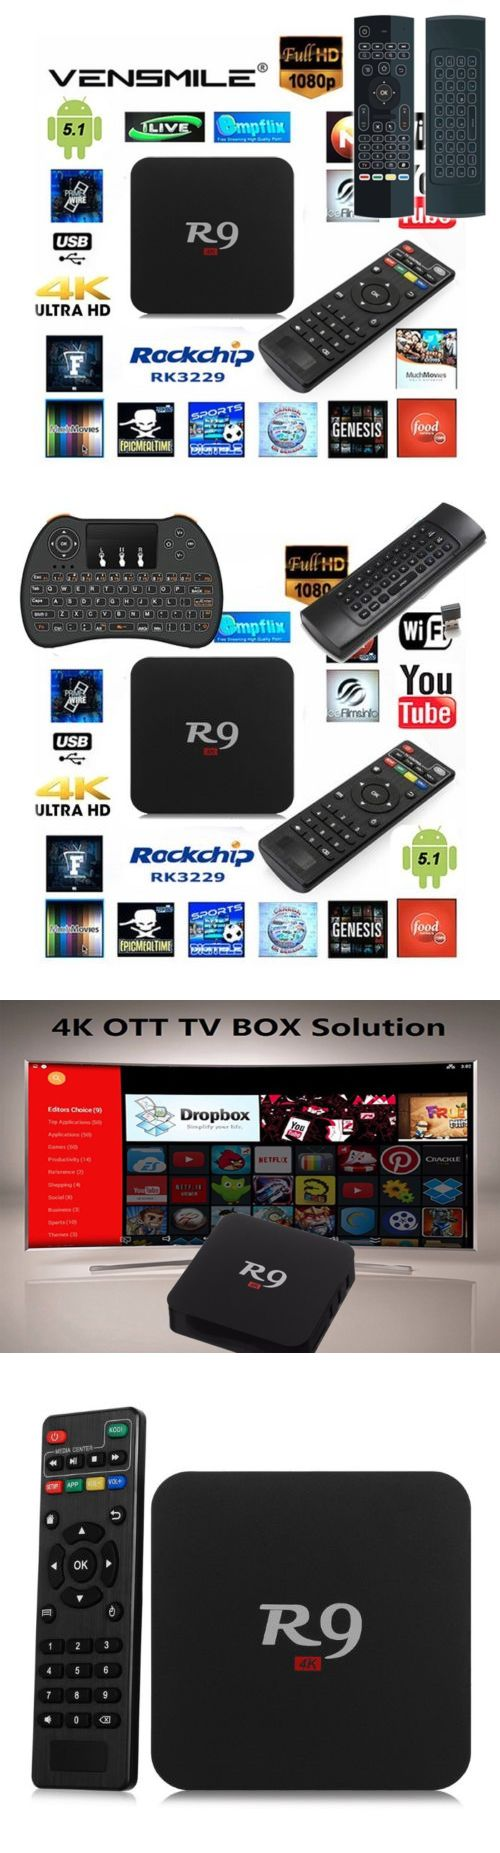 Other TV Video and Home Audio: R9 Rockchip Quad-Core 1080P 4K Android Wifi Tv Box Set+Air Mouse Keypad Remote -> BUY IT NOW ONLY: $57.95 on eBay!